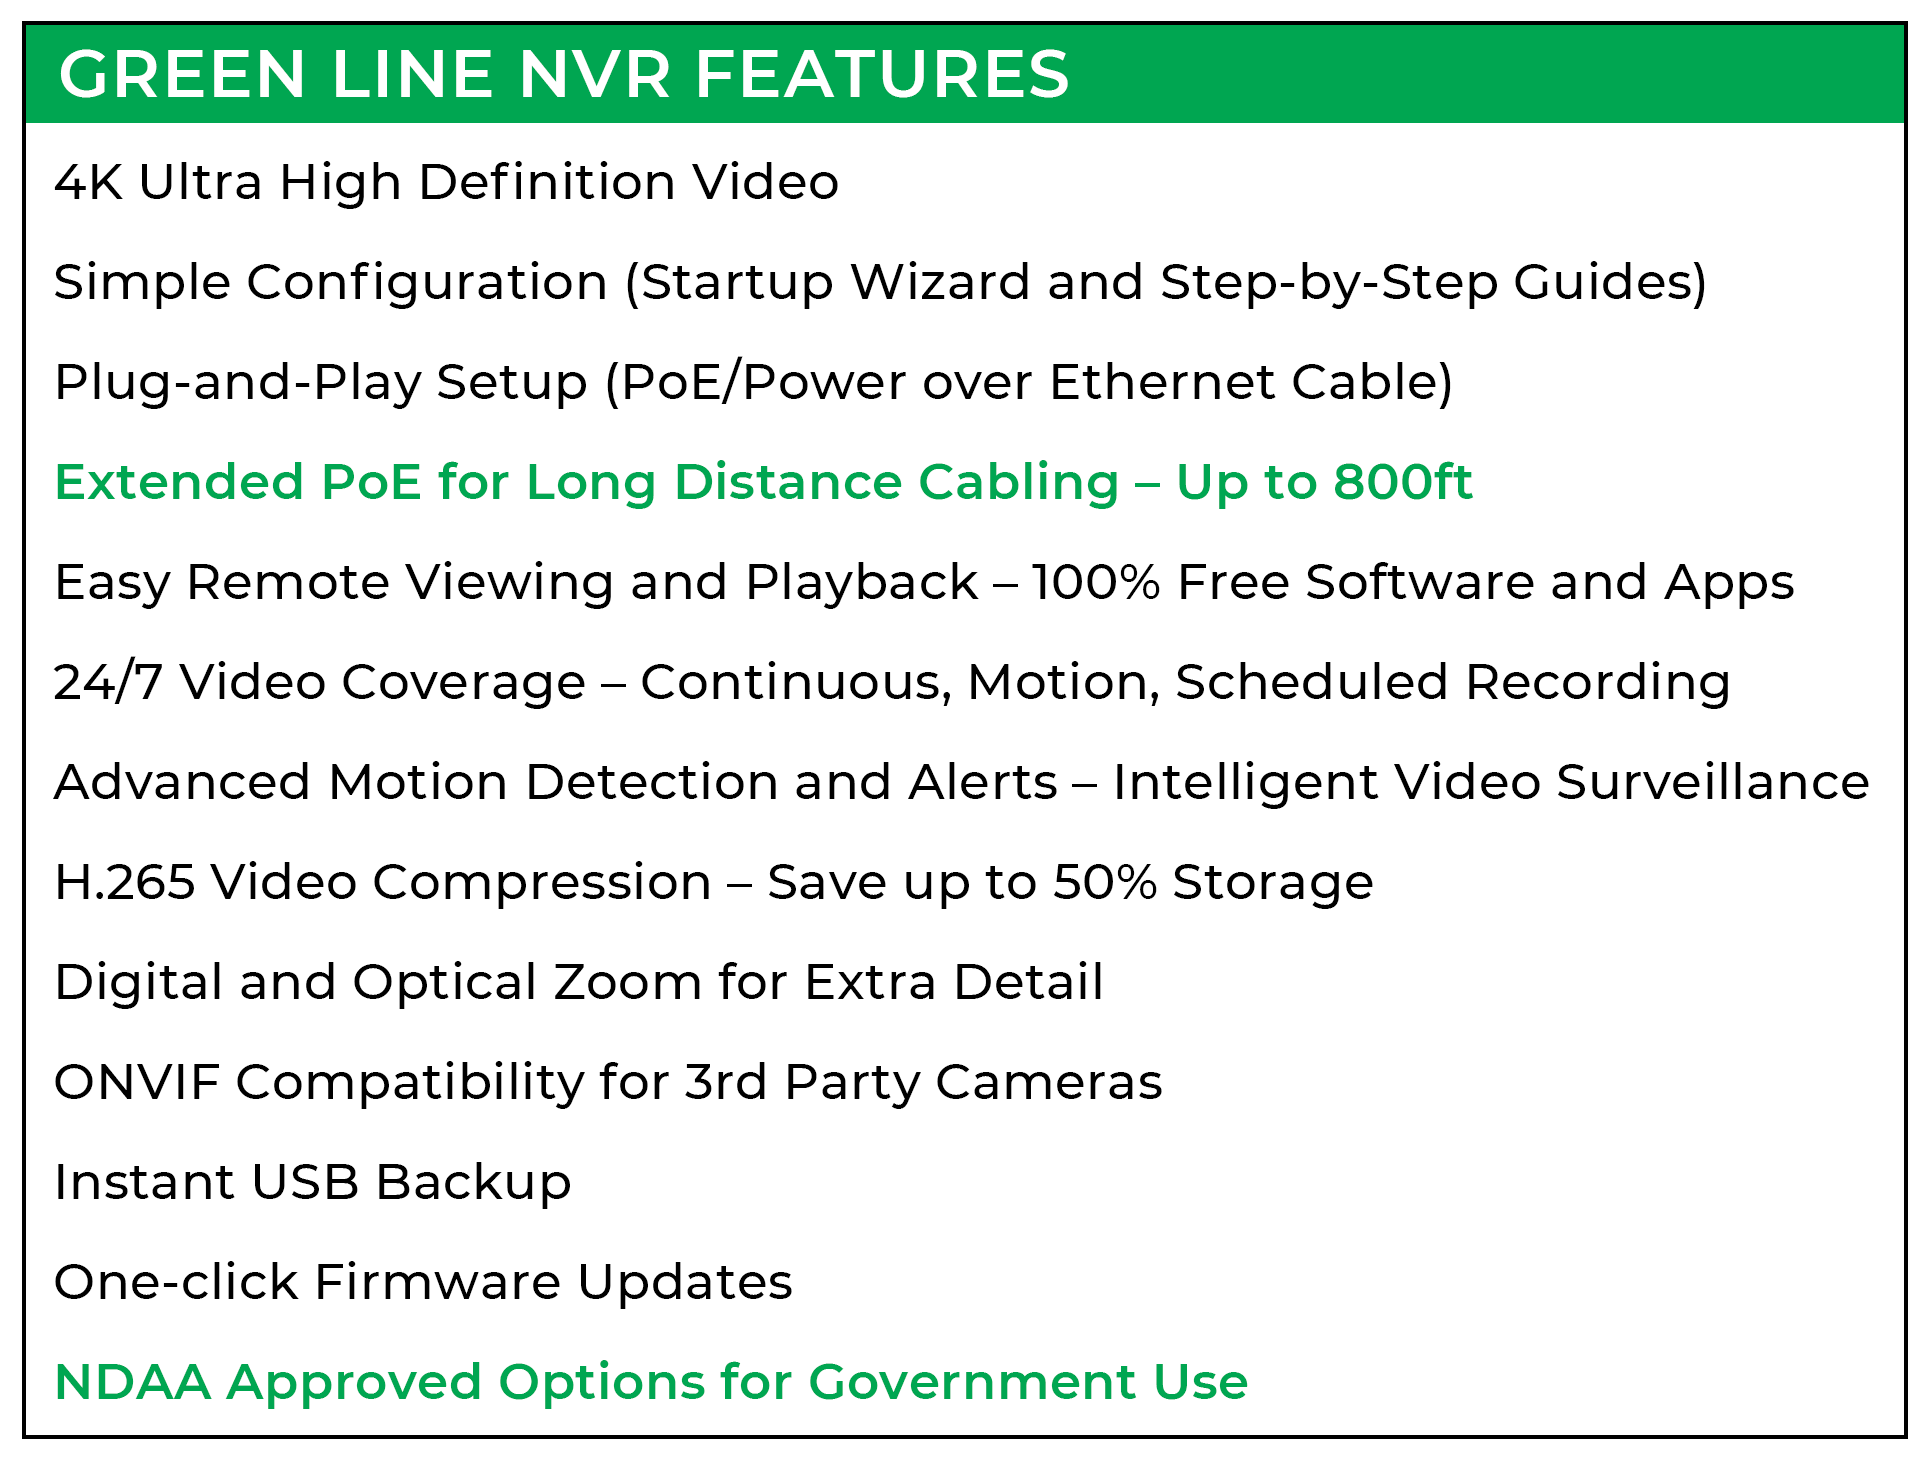 green-line-nvr-features2.png